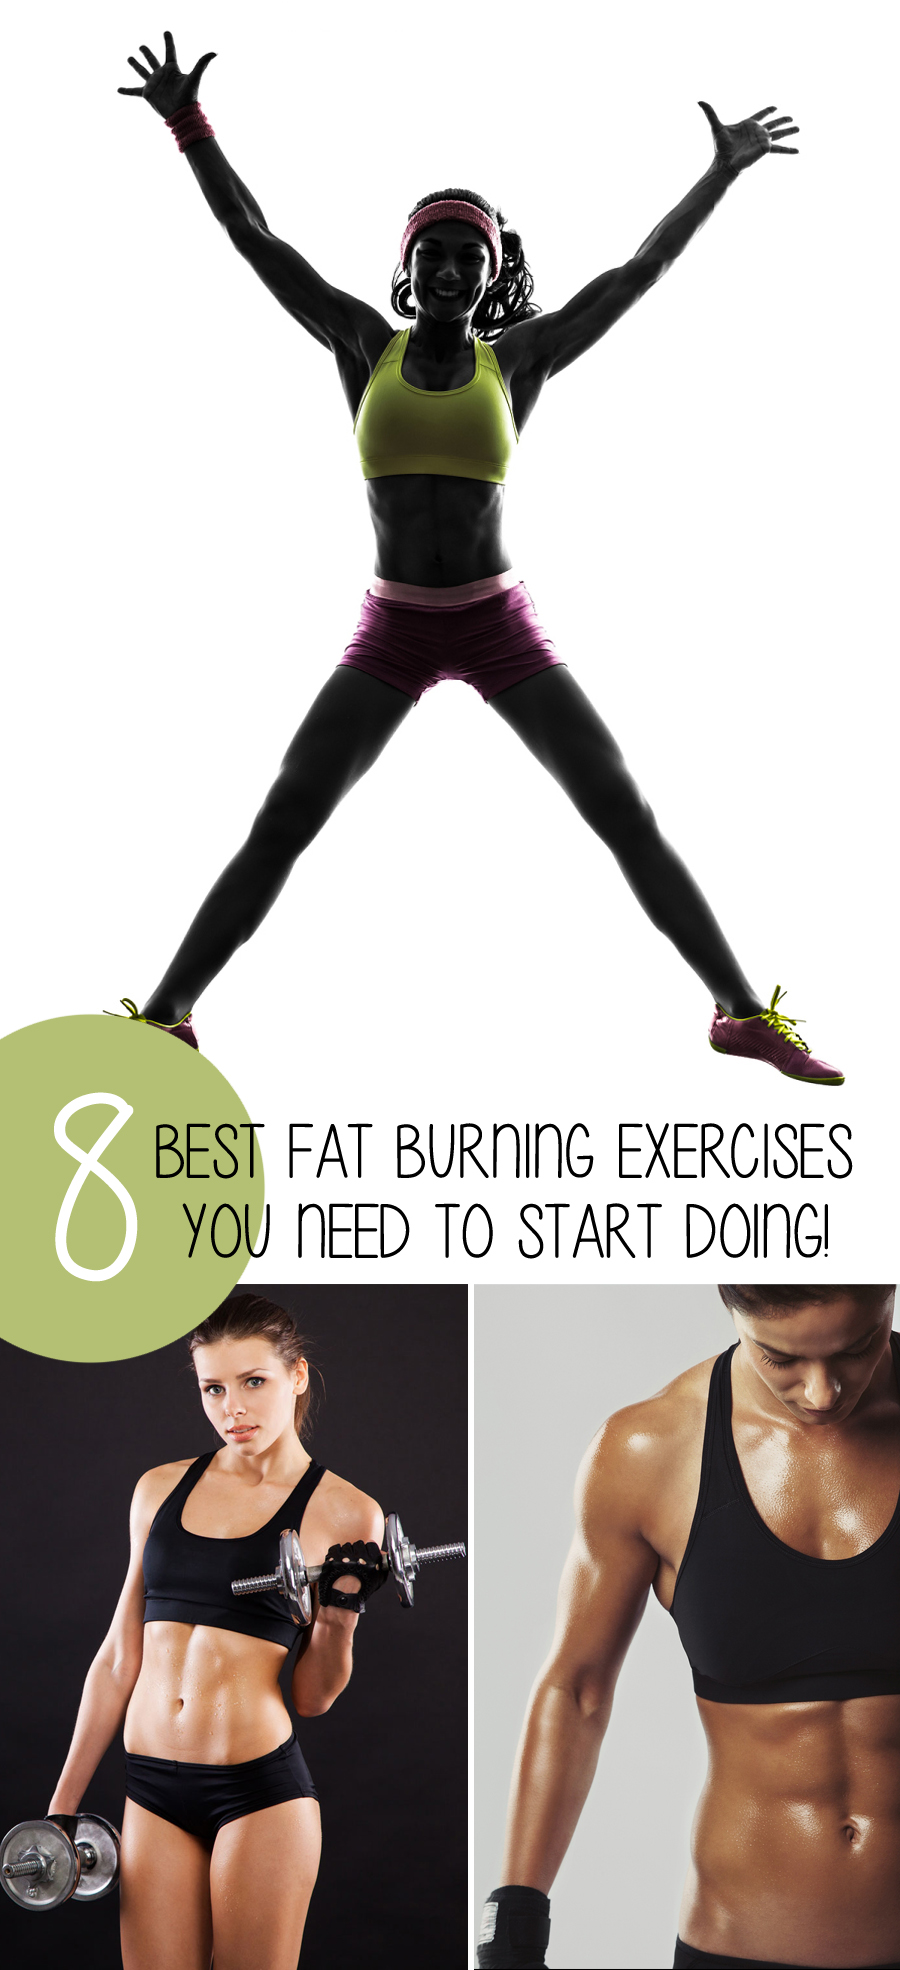 The 8 Best Fat Burning Exercises You Need To Start Doing ...